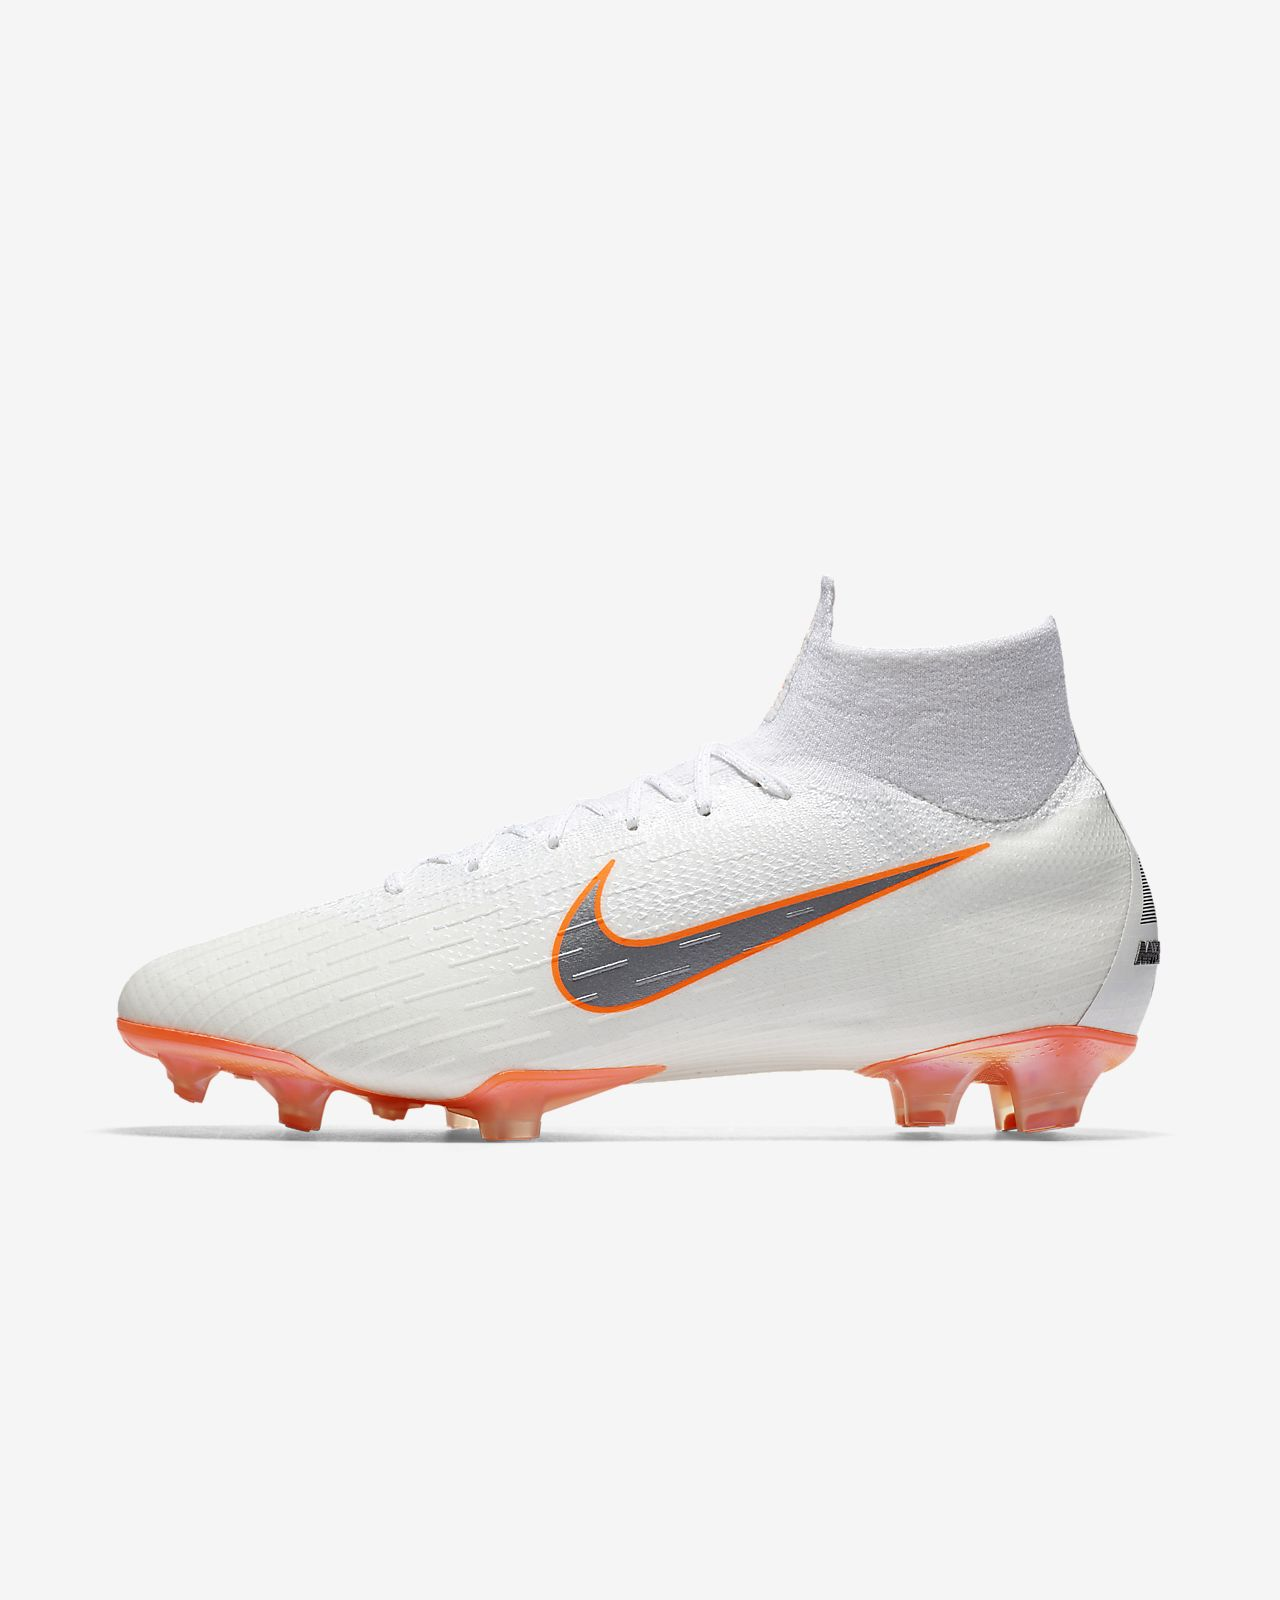 Nike Mercurial Superfly 360 Elite Just Do It Firm-Ground Football Boot 4ca076244048